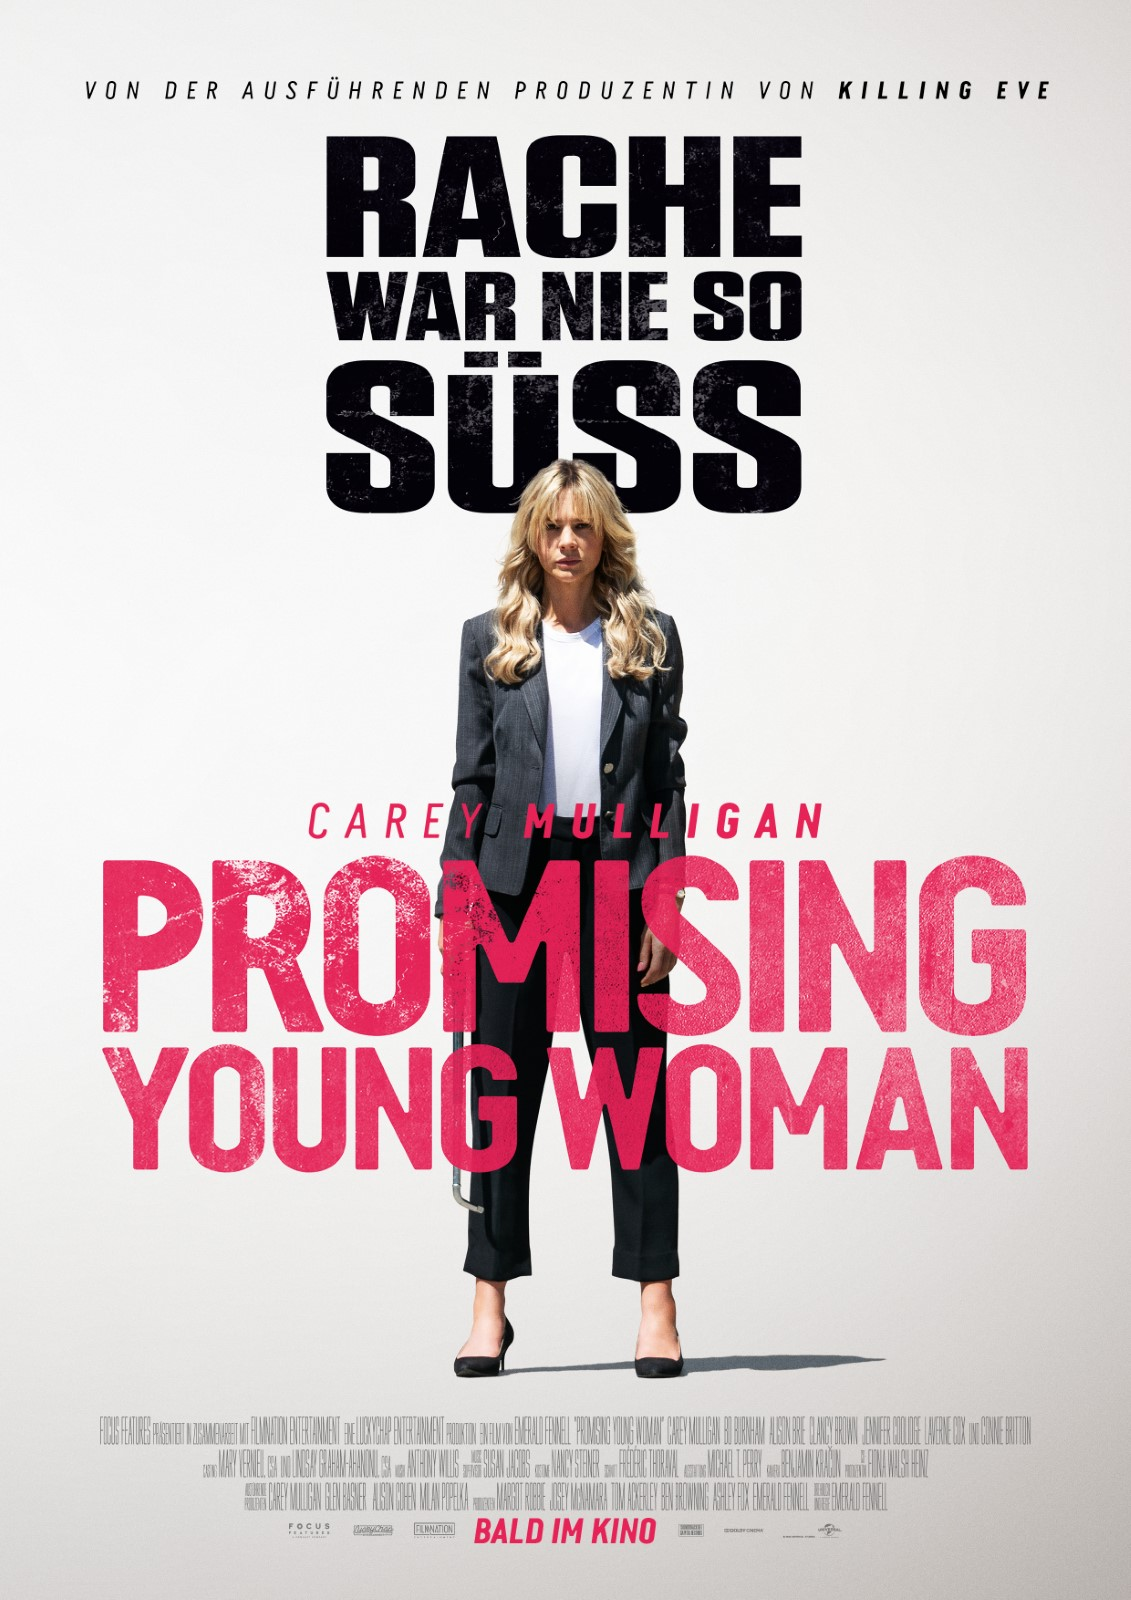 Poster Promising Young Woman